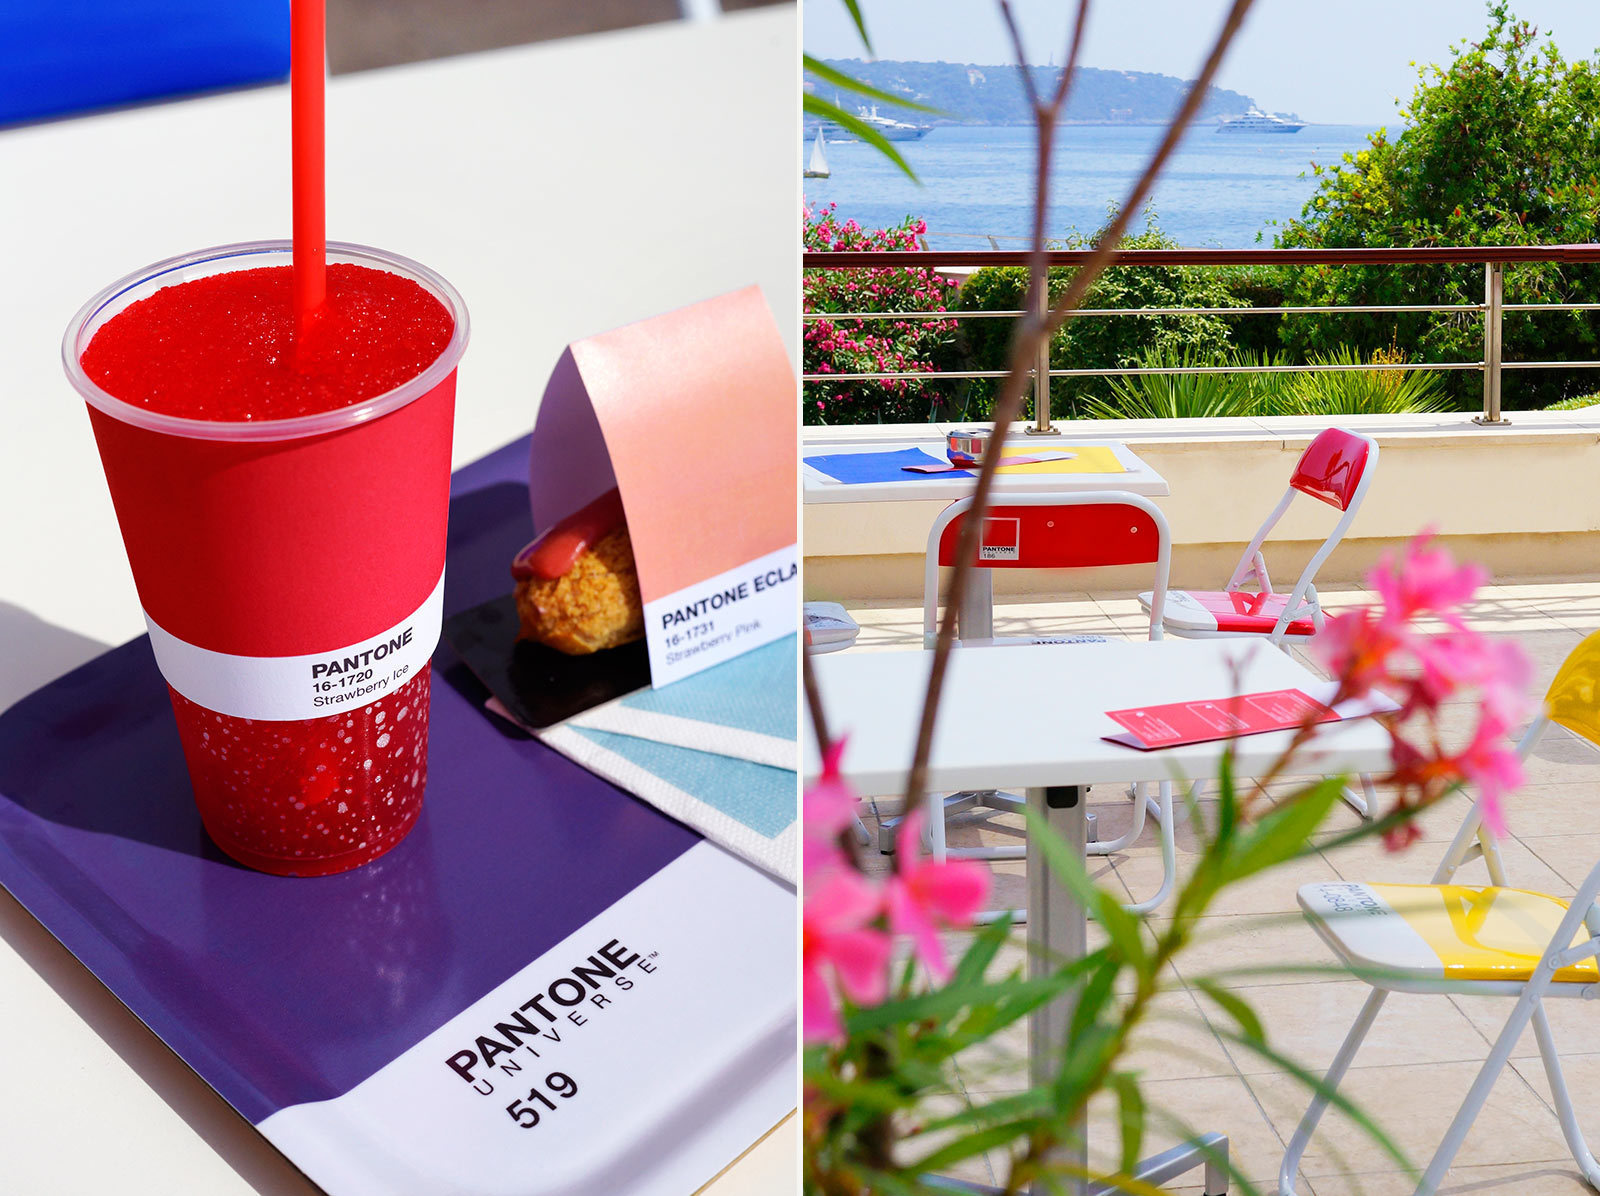 large_pantone-cafe-monaco-pop-up-food (1)